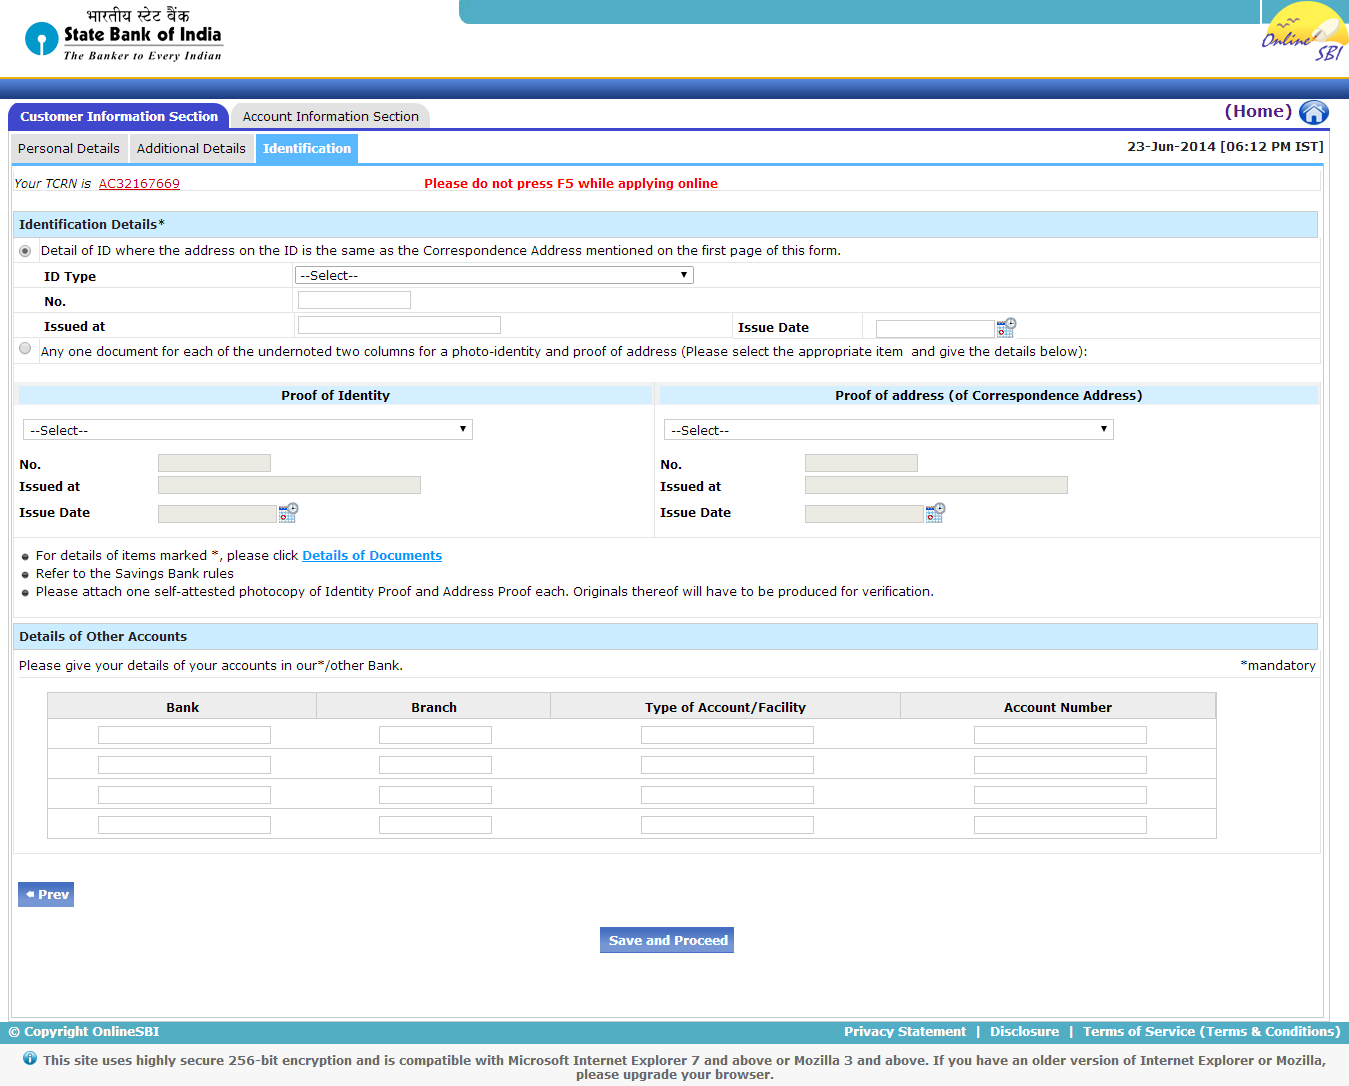 sbi bank saving account application